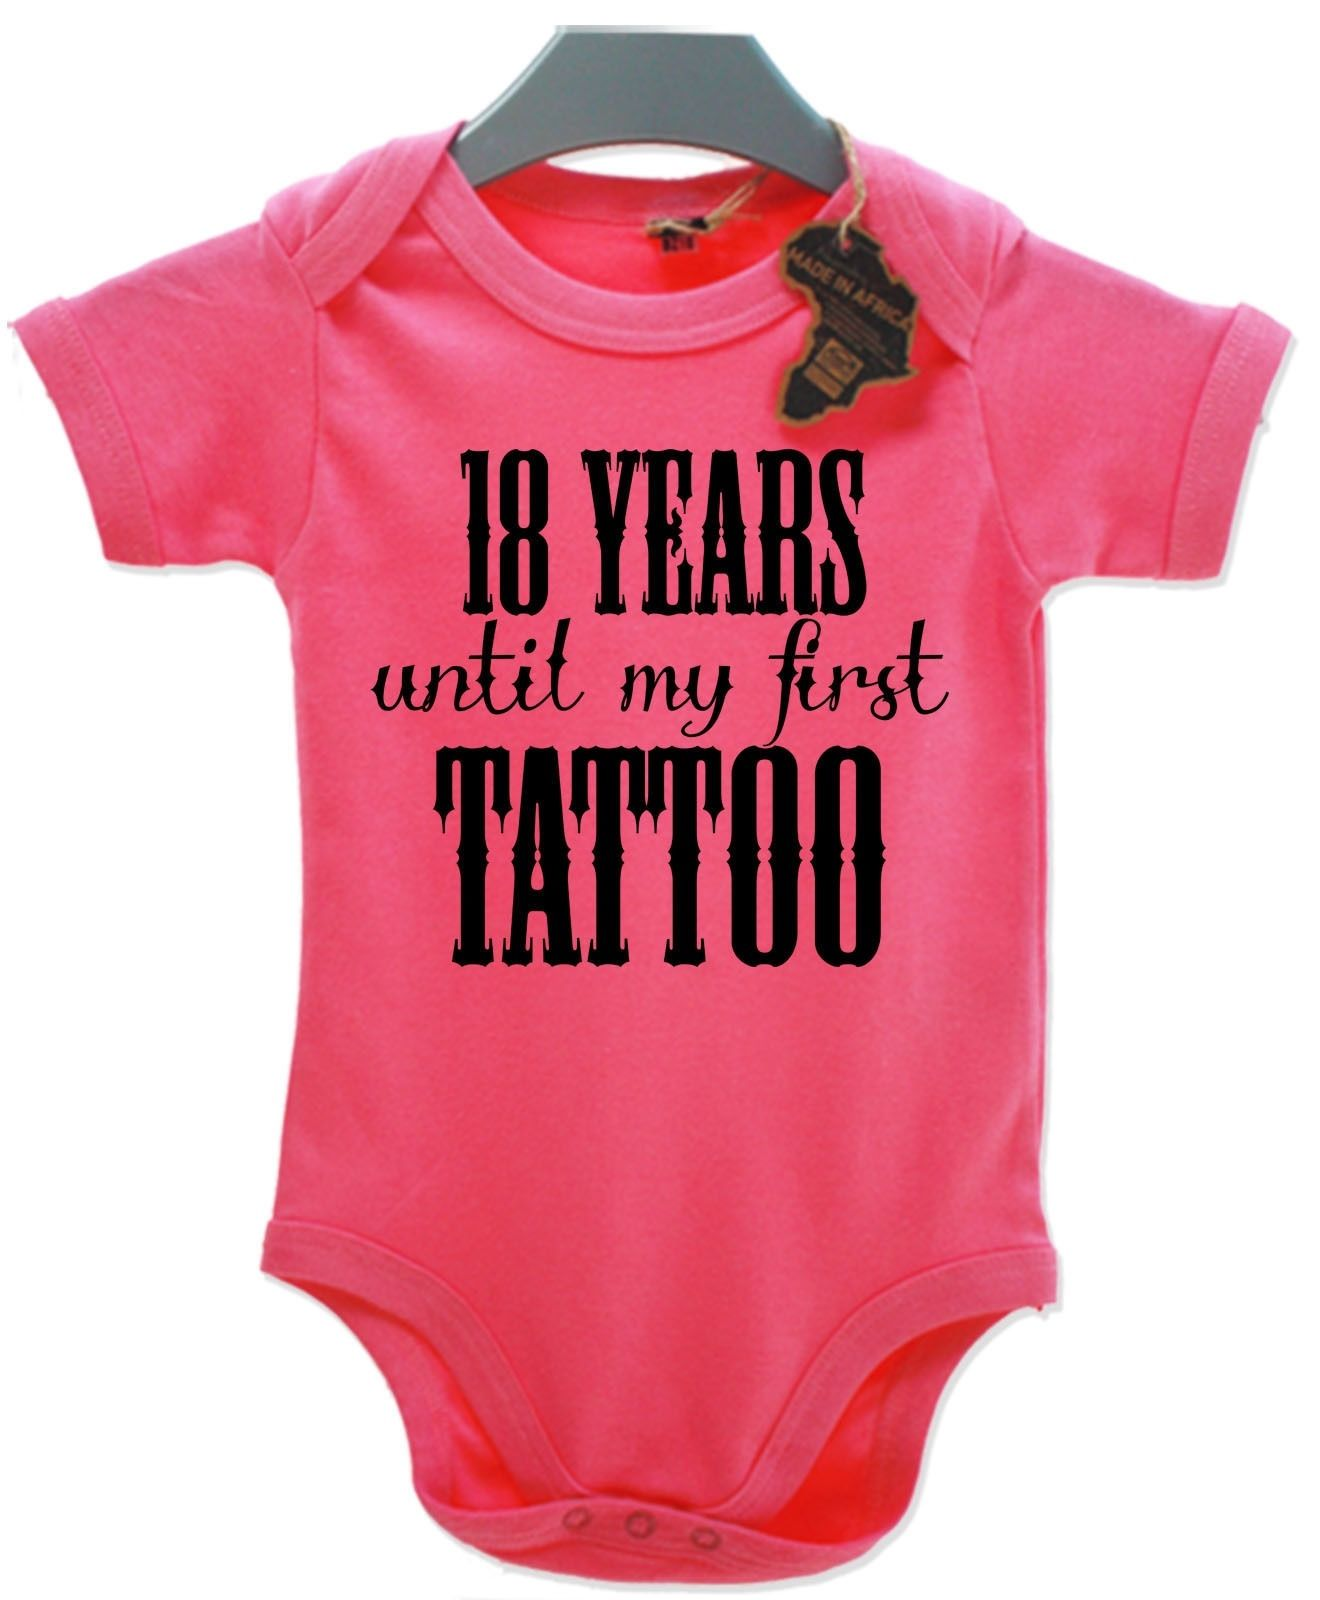 My Dad/'s Tattoo/'s Babygrow Vest Baby Clothing Funny Gift